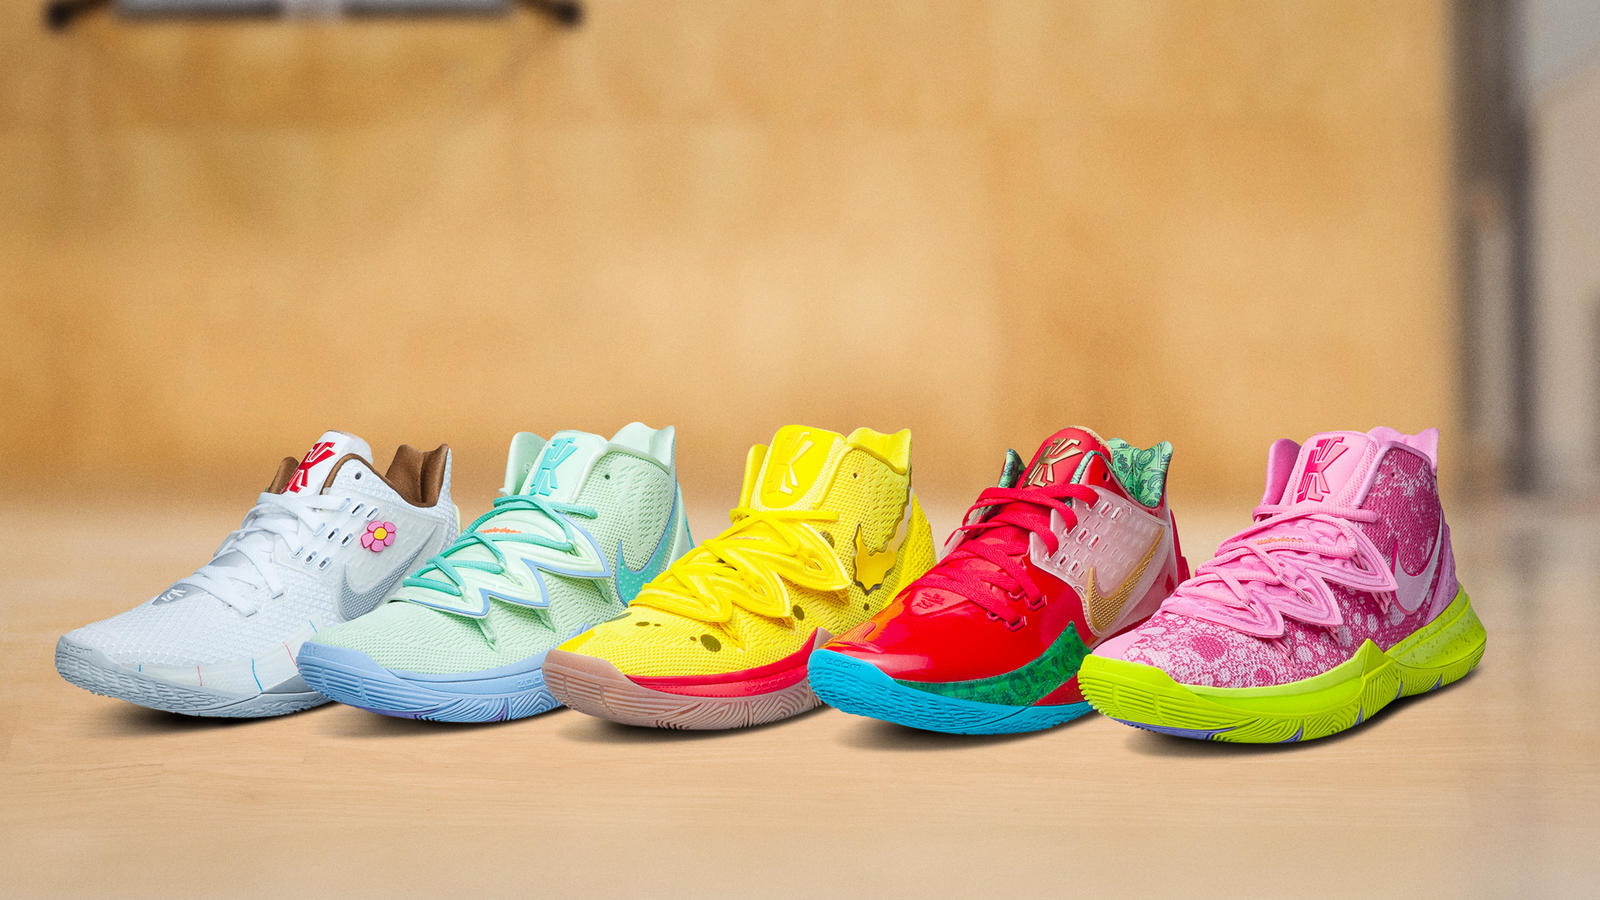 Nike KYRIE x SpongeBob SquarePants Collection , Nike News